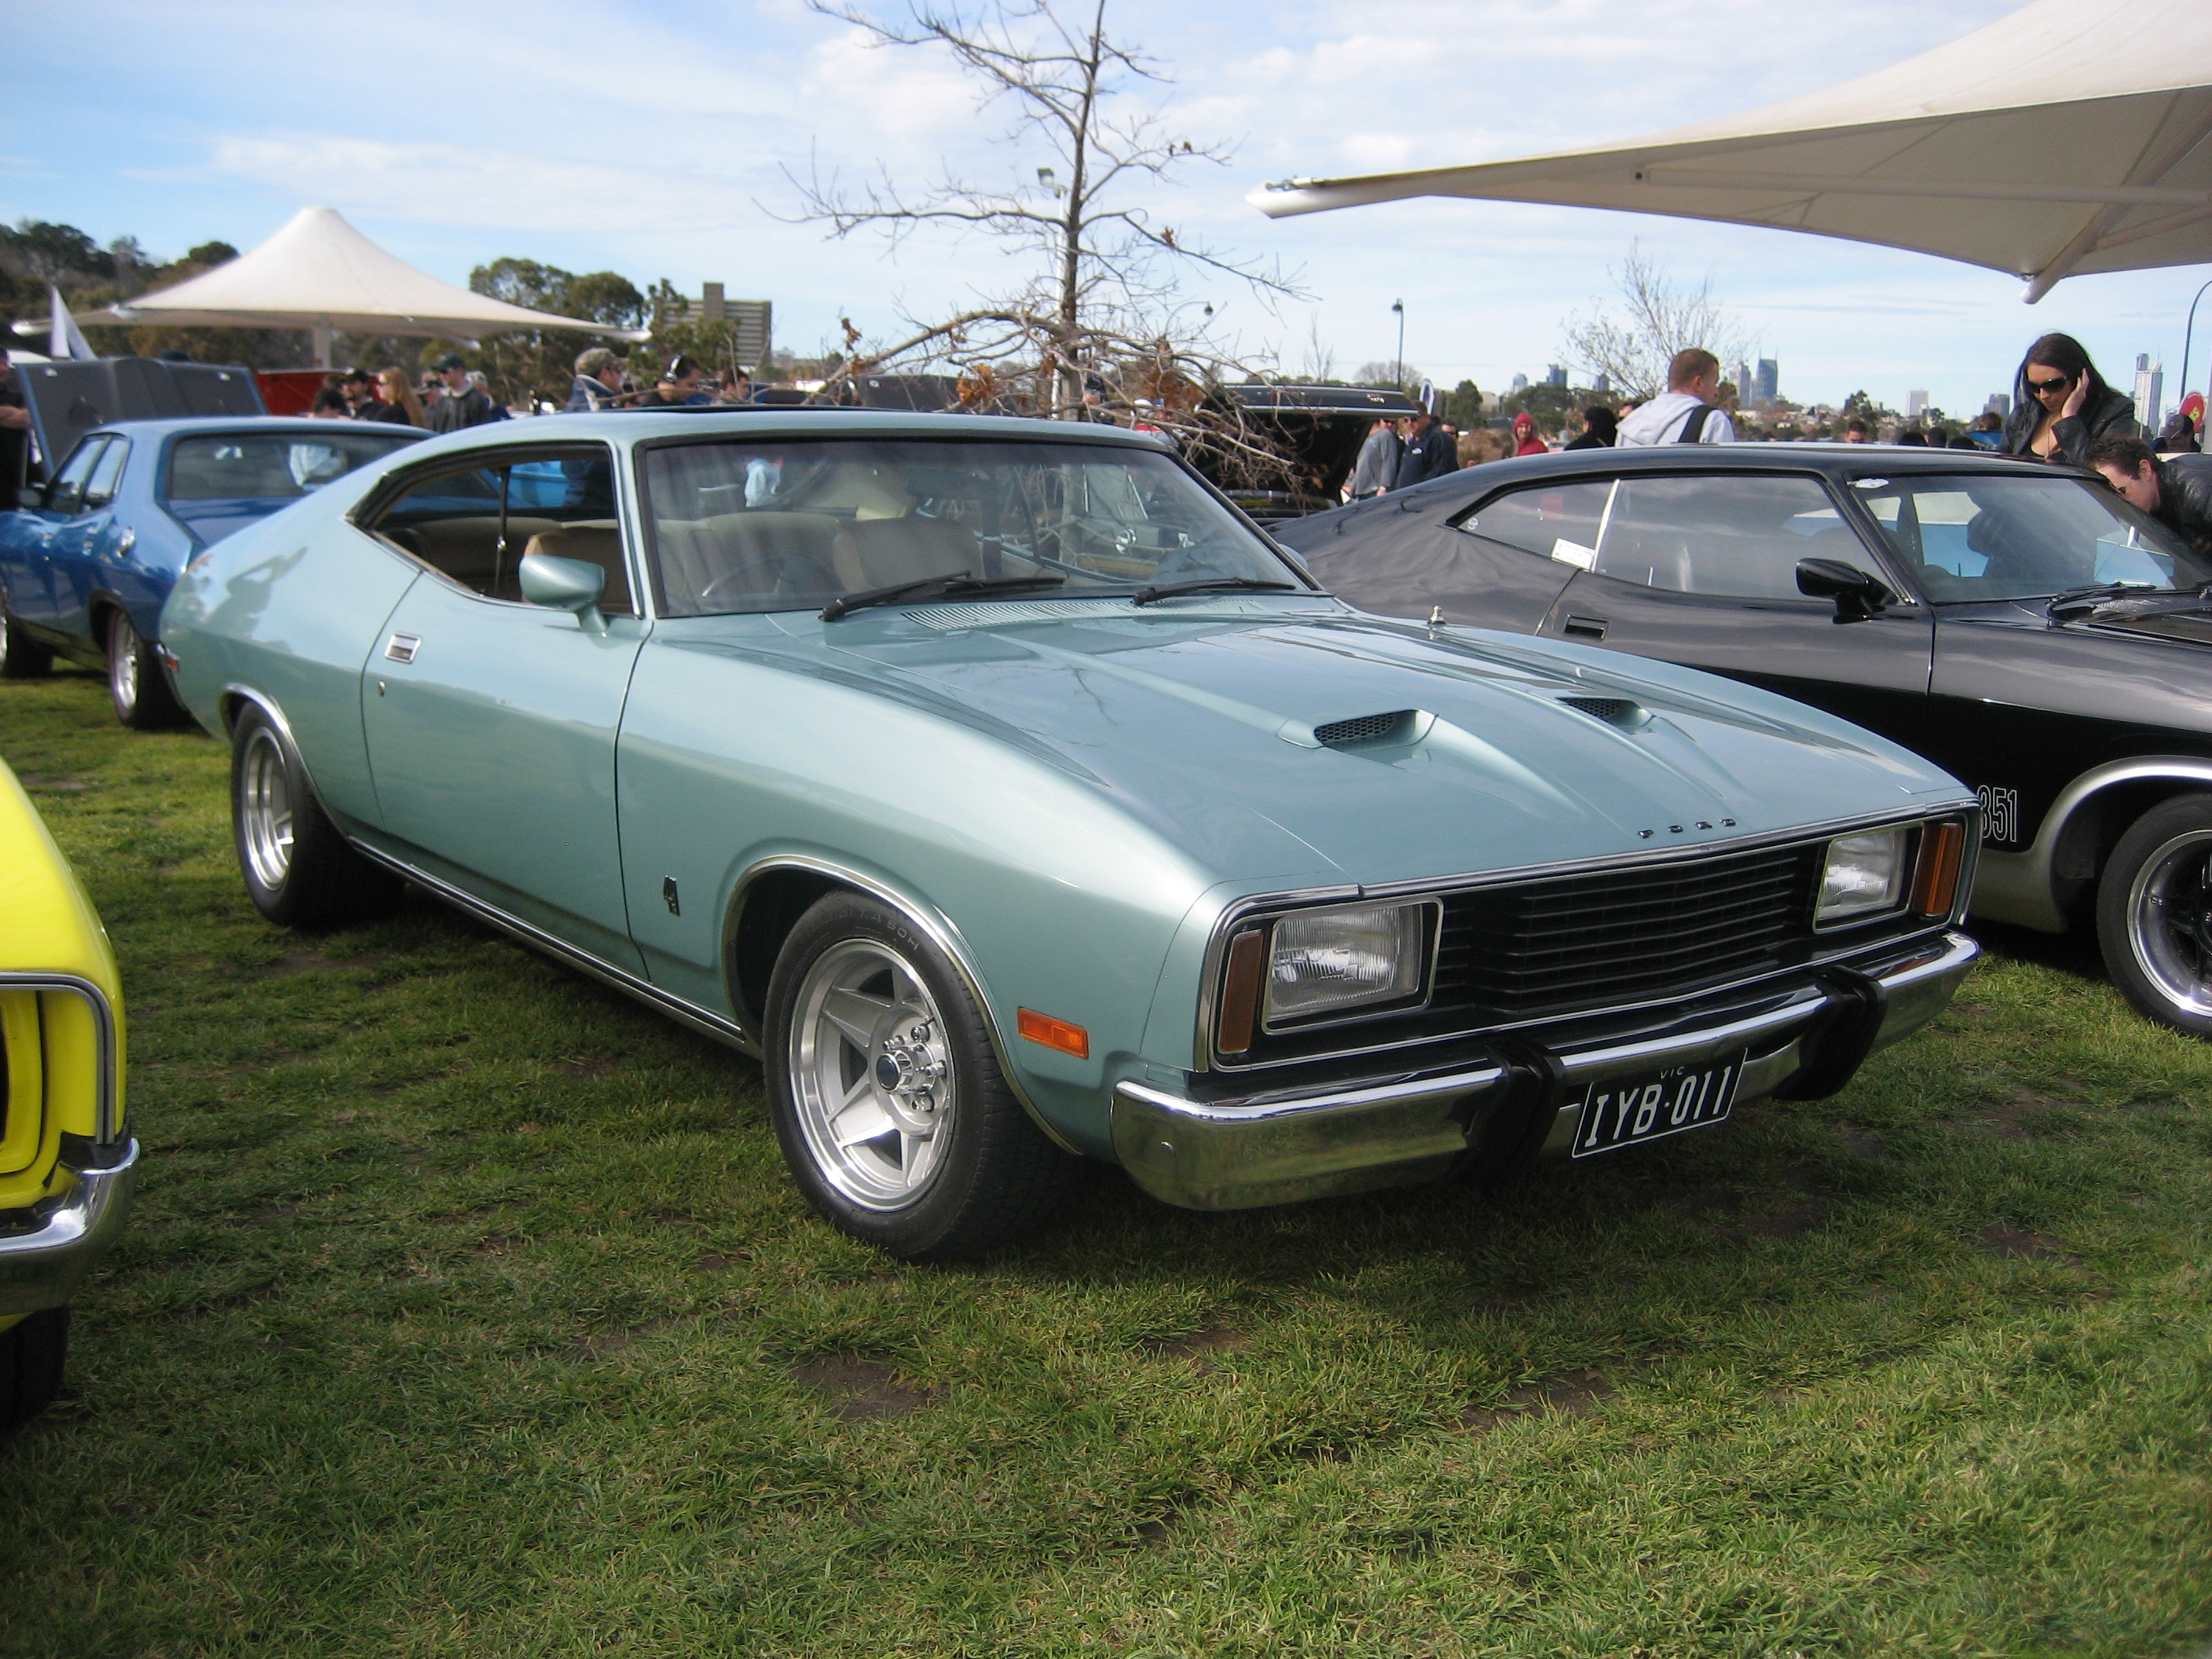 B32fa7c7fe9323c39c2160dbbef54201 as well Last Of The V8 Interceptors 71939850 also Jimmys Xb Gt Coupe Body Restoration furthermore File 1971 Ford Falcon XY GTHO Raw Orange also Watch. on ford xb falcon